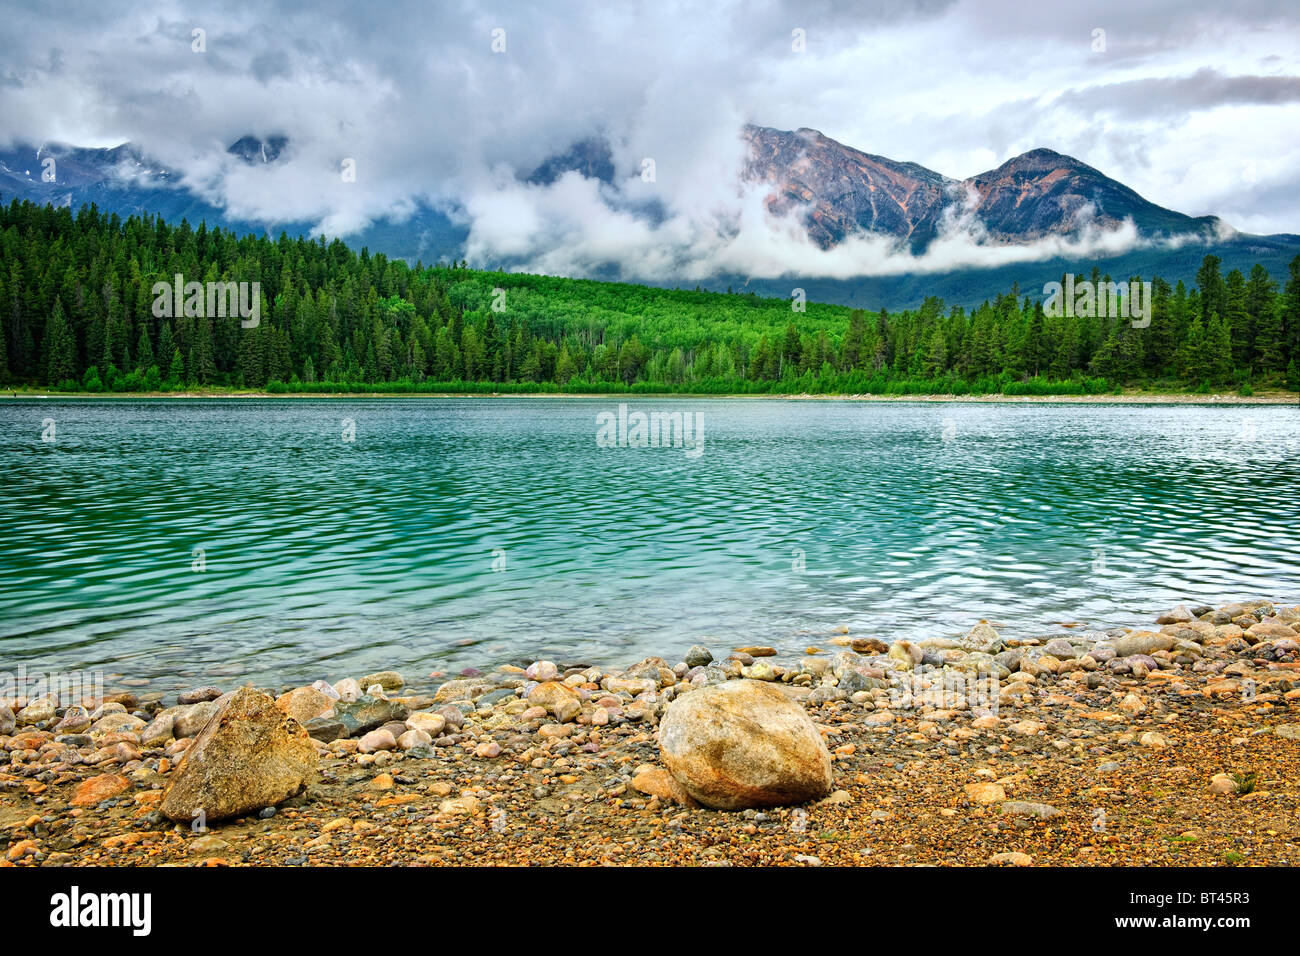 Patricia Lake and Pyramid Mountain in Jasper National Park, Canada - Stock Image